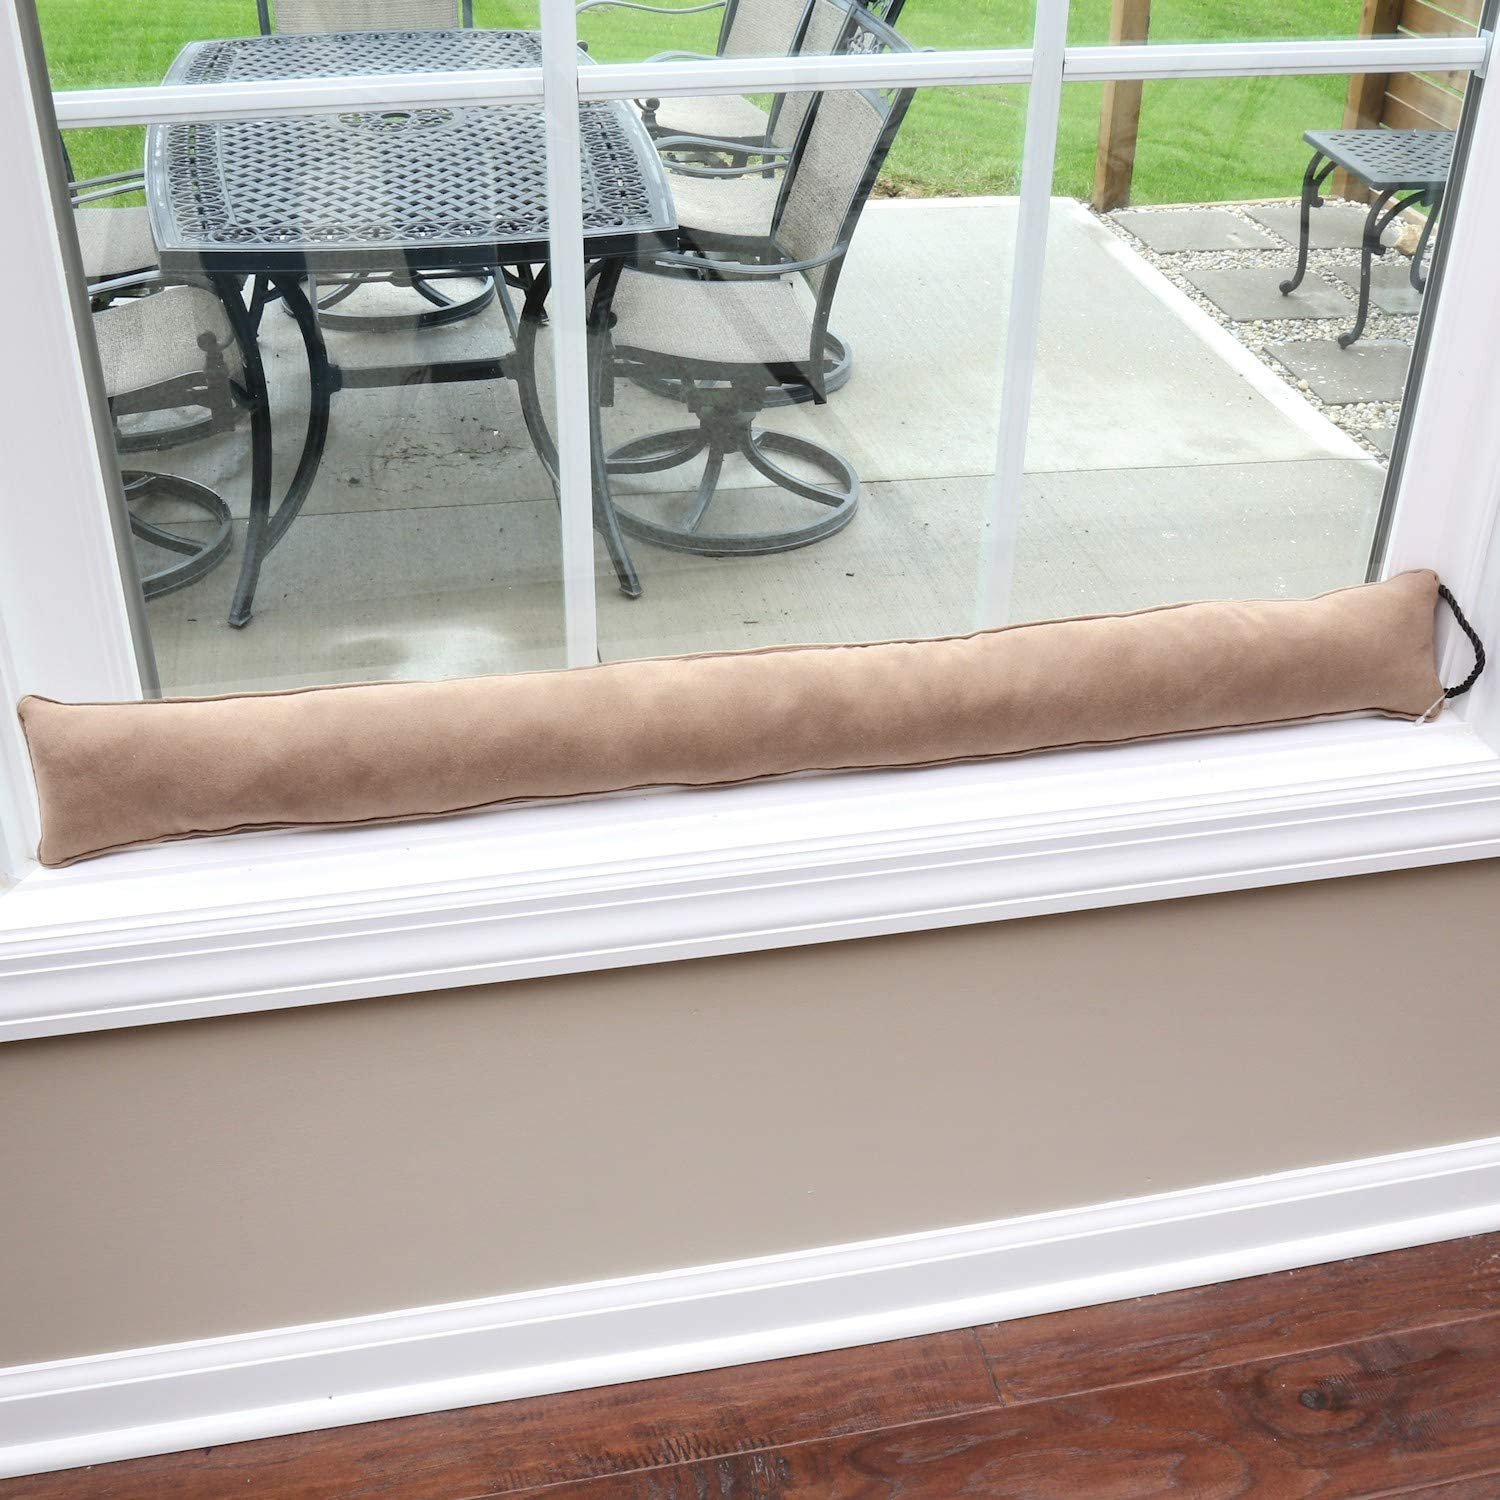 HOME DISTRICT Draft Dodger - Faux Suede Weighted Door and Window Breeze, Bug, Noise Guard Stopper Blocker - 35.5 Inches Long - Light Brown